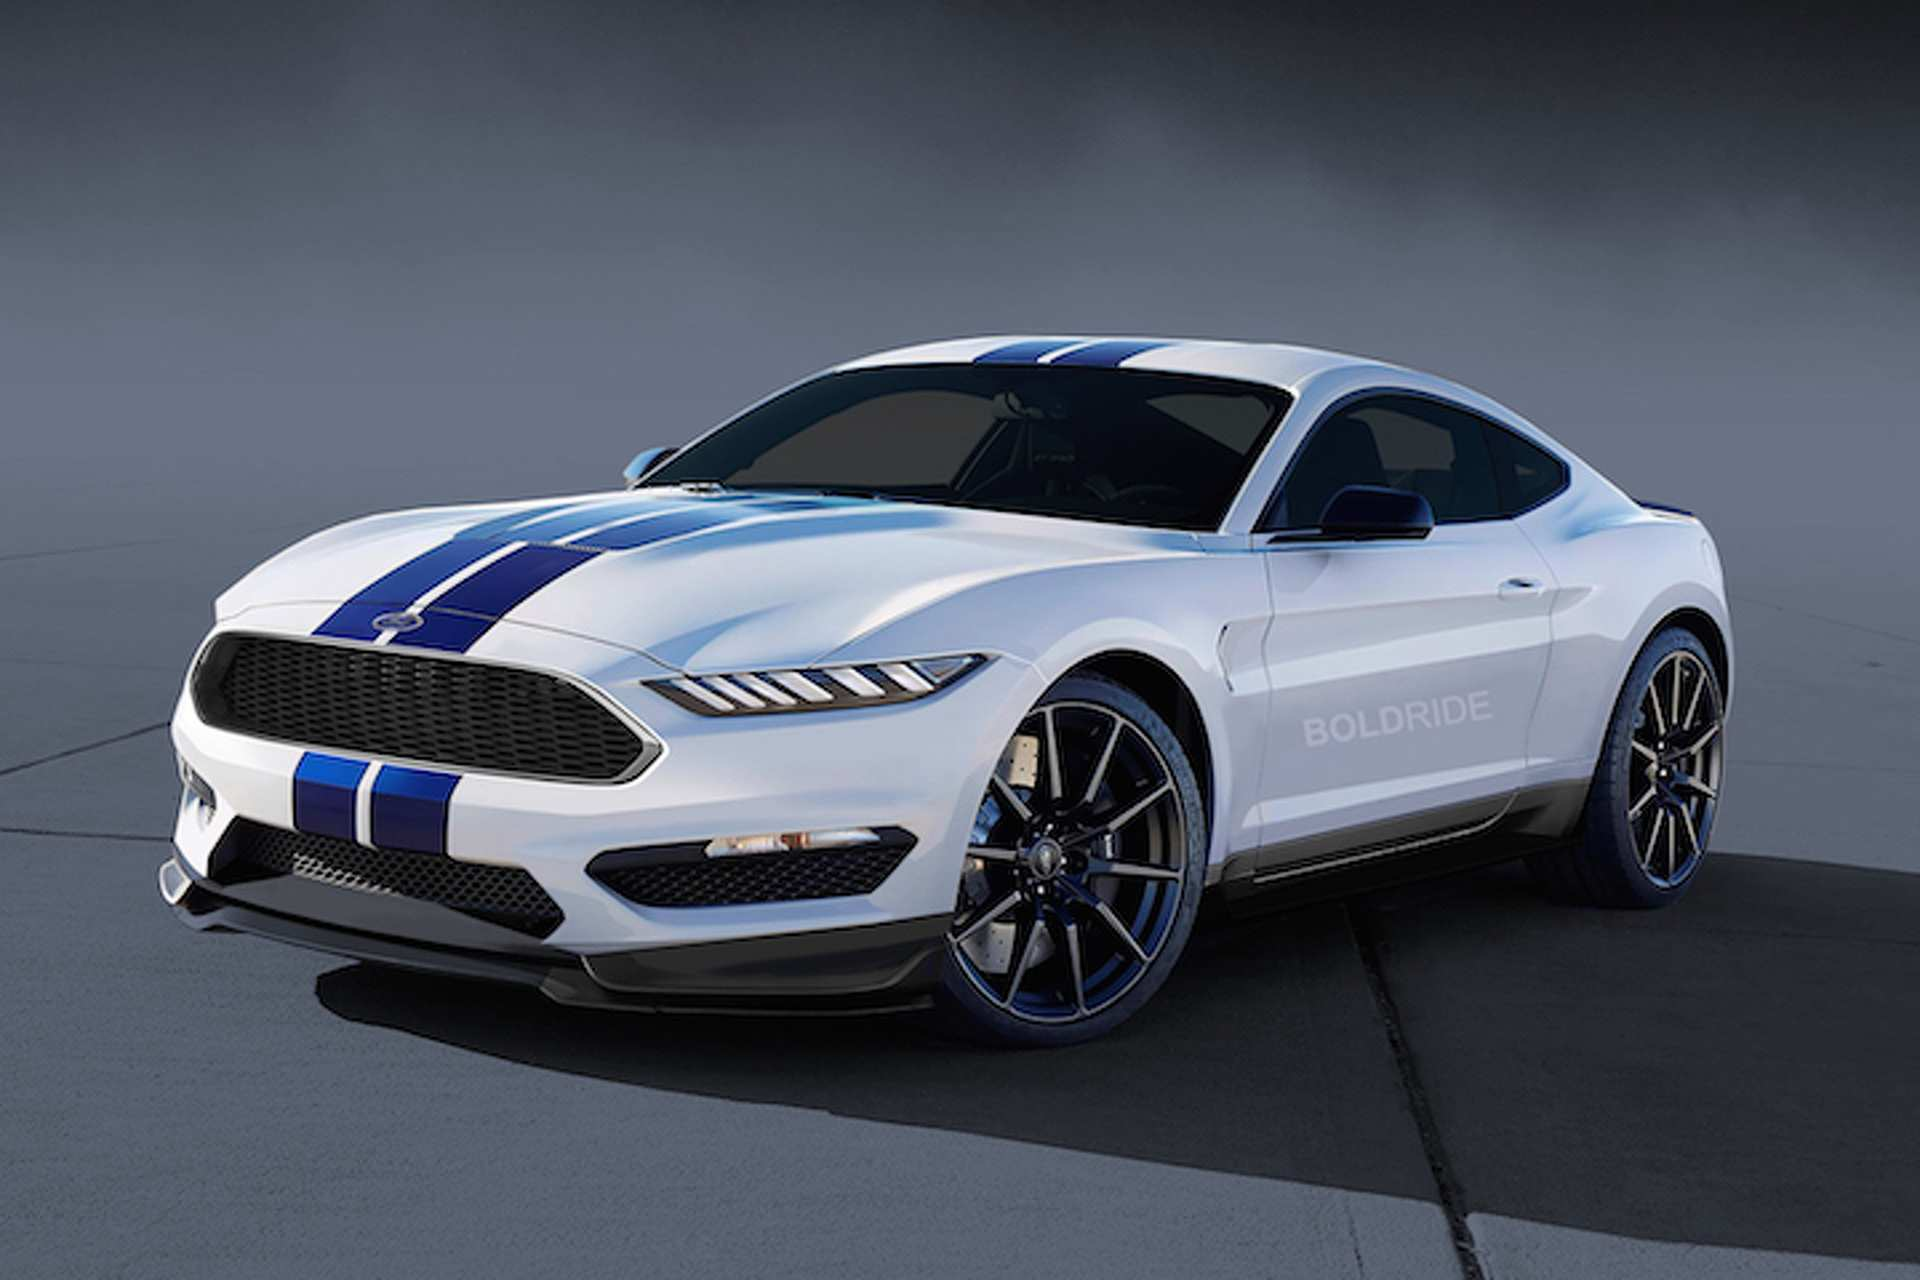 63 All New 2020 Ford Mustang Gt Redesign And Concept